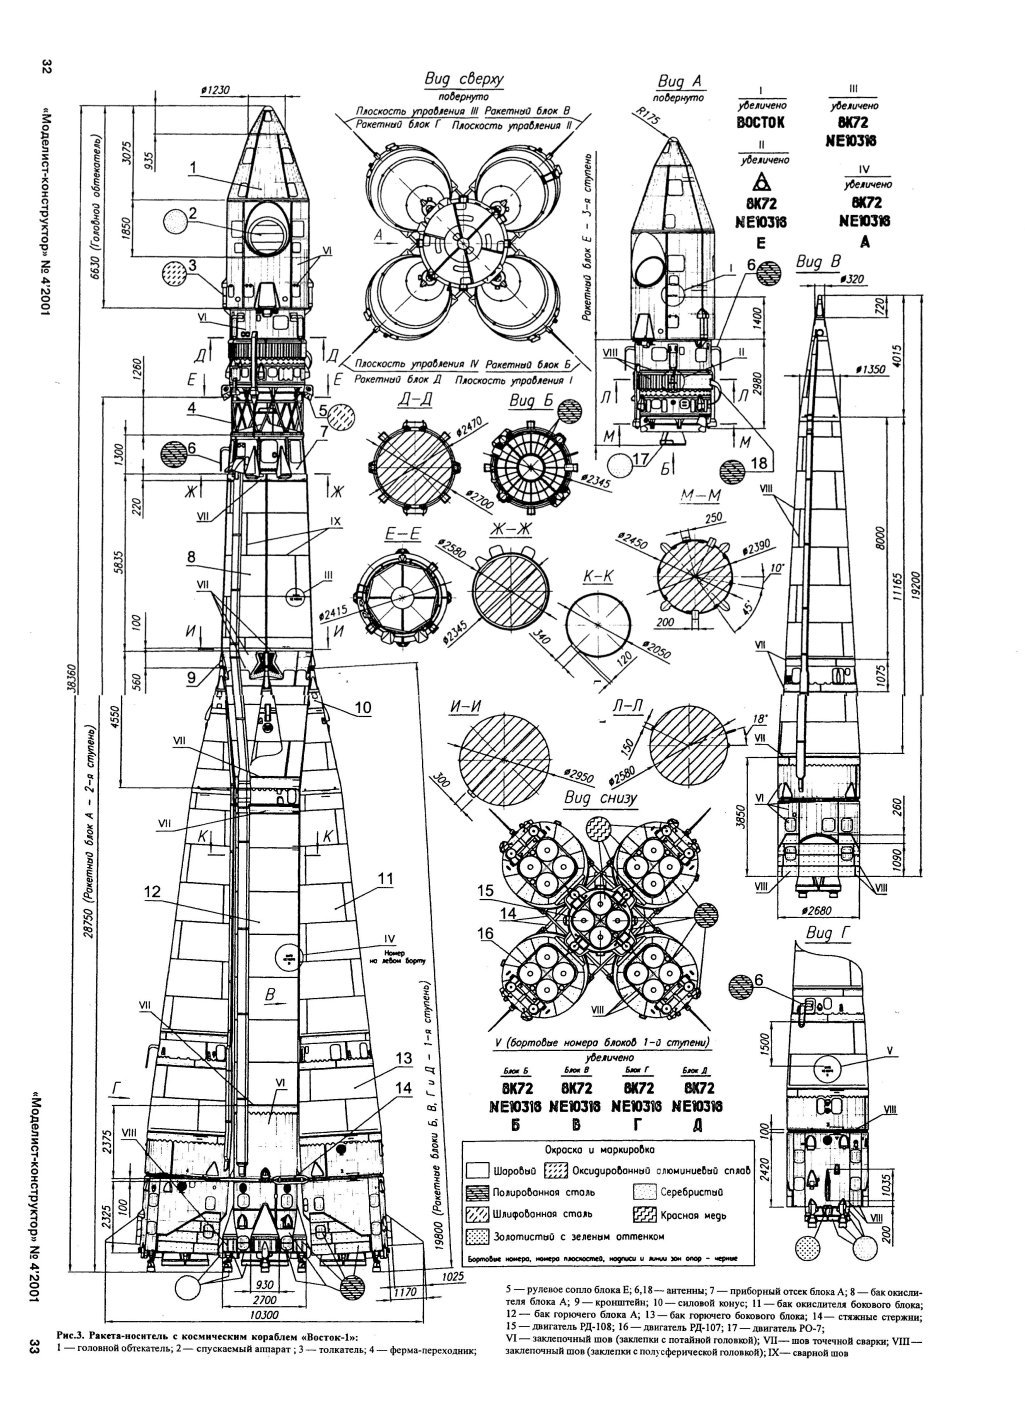 Structure of Vostok. Vostok was a family of rockets derived from the